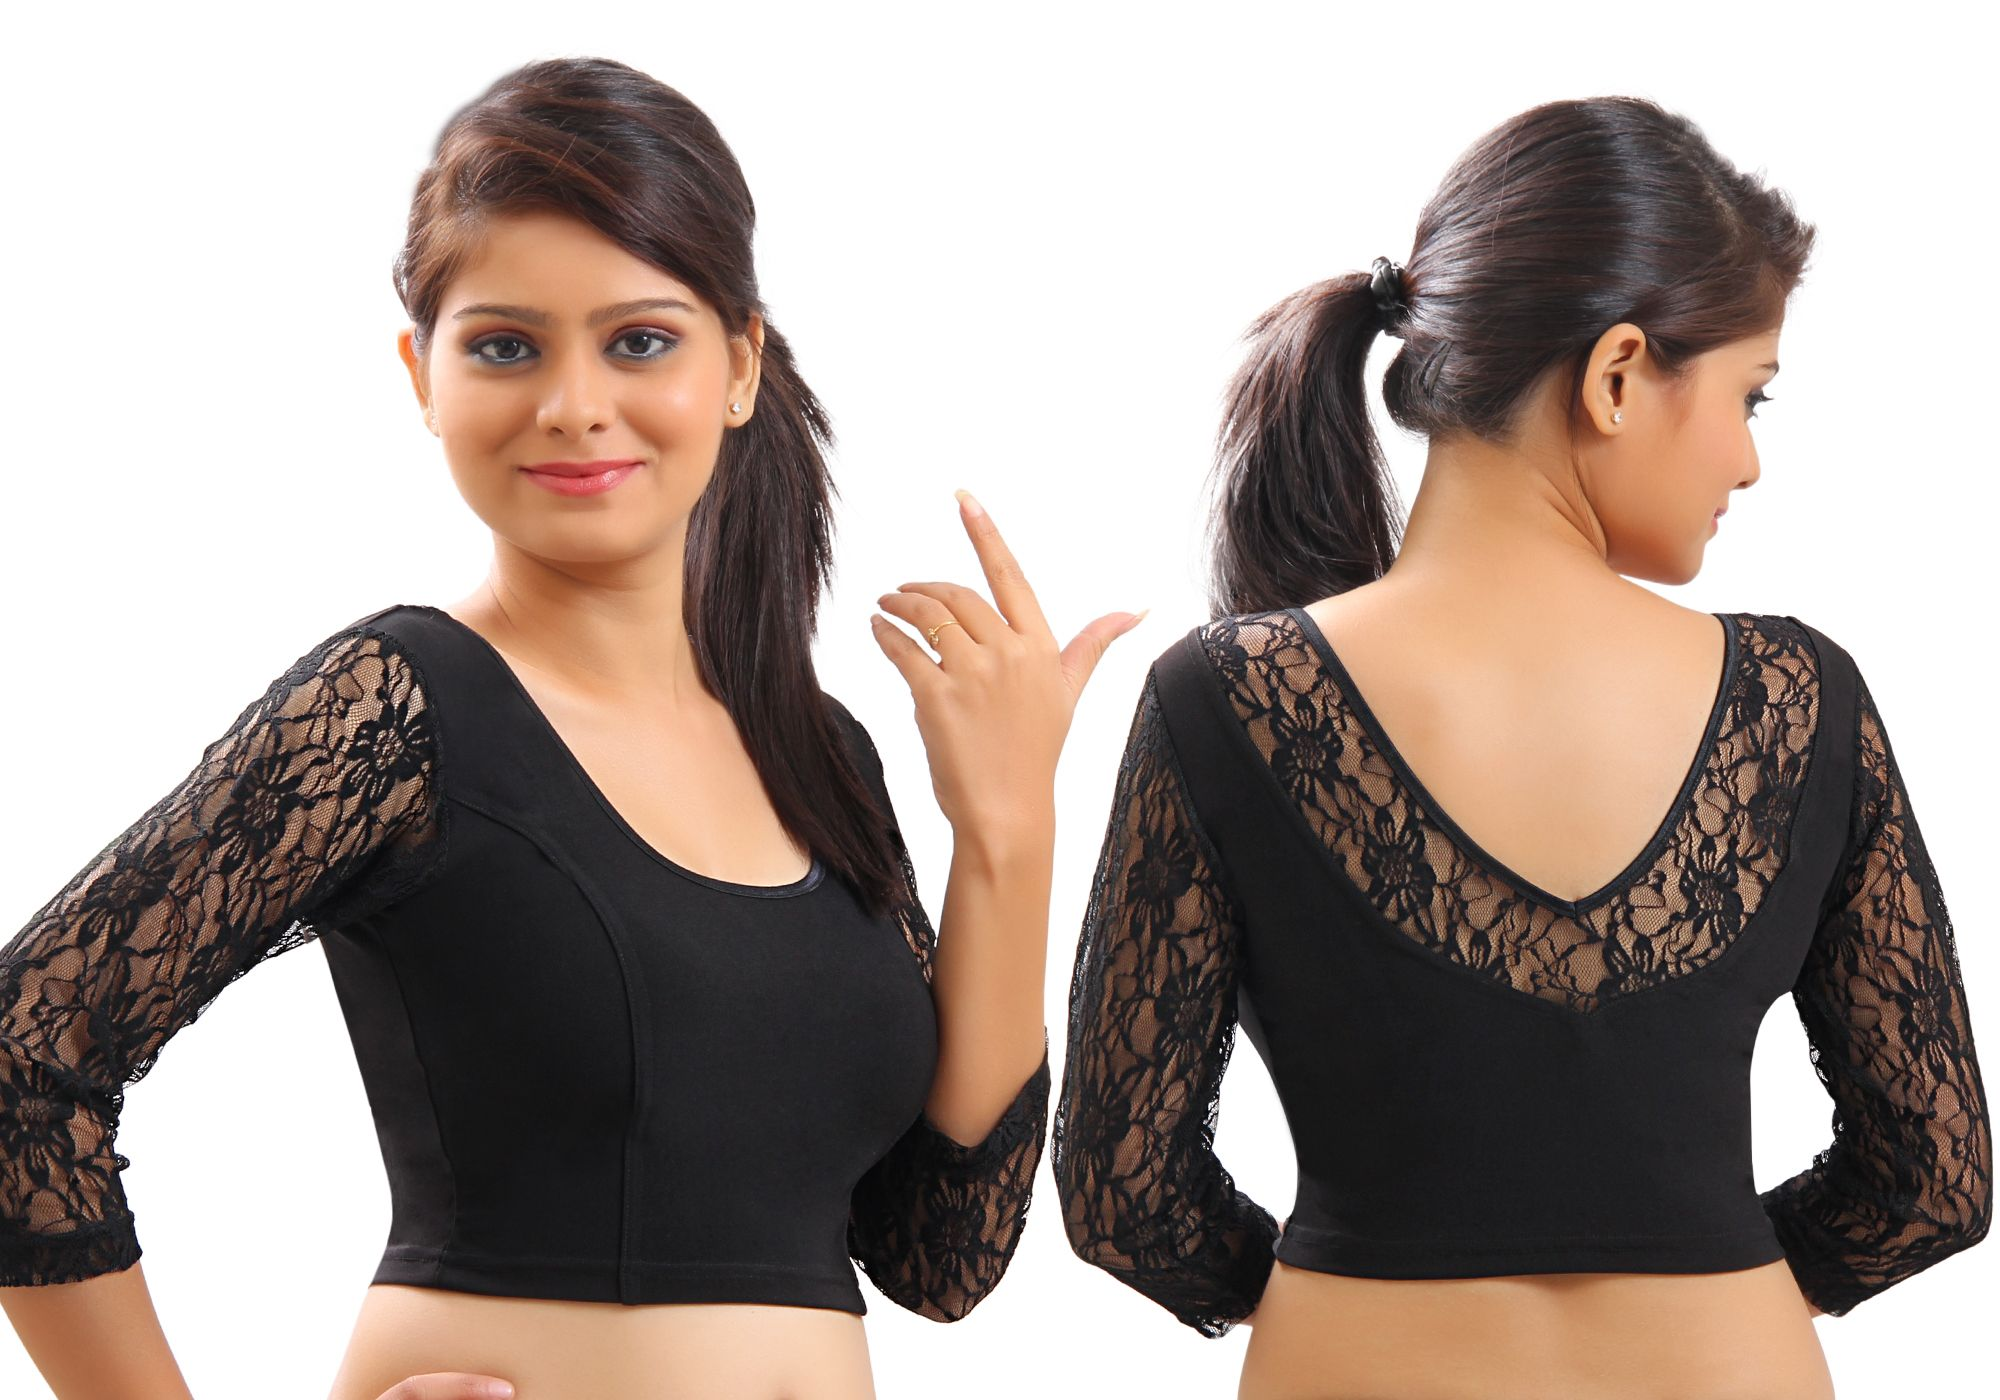 118f2b3c09fa3e Black Lace Crochet Stretchable Blouse & Crop Top From Muhenera A12l- Online  Shopping for Blouses by Muhenera